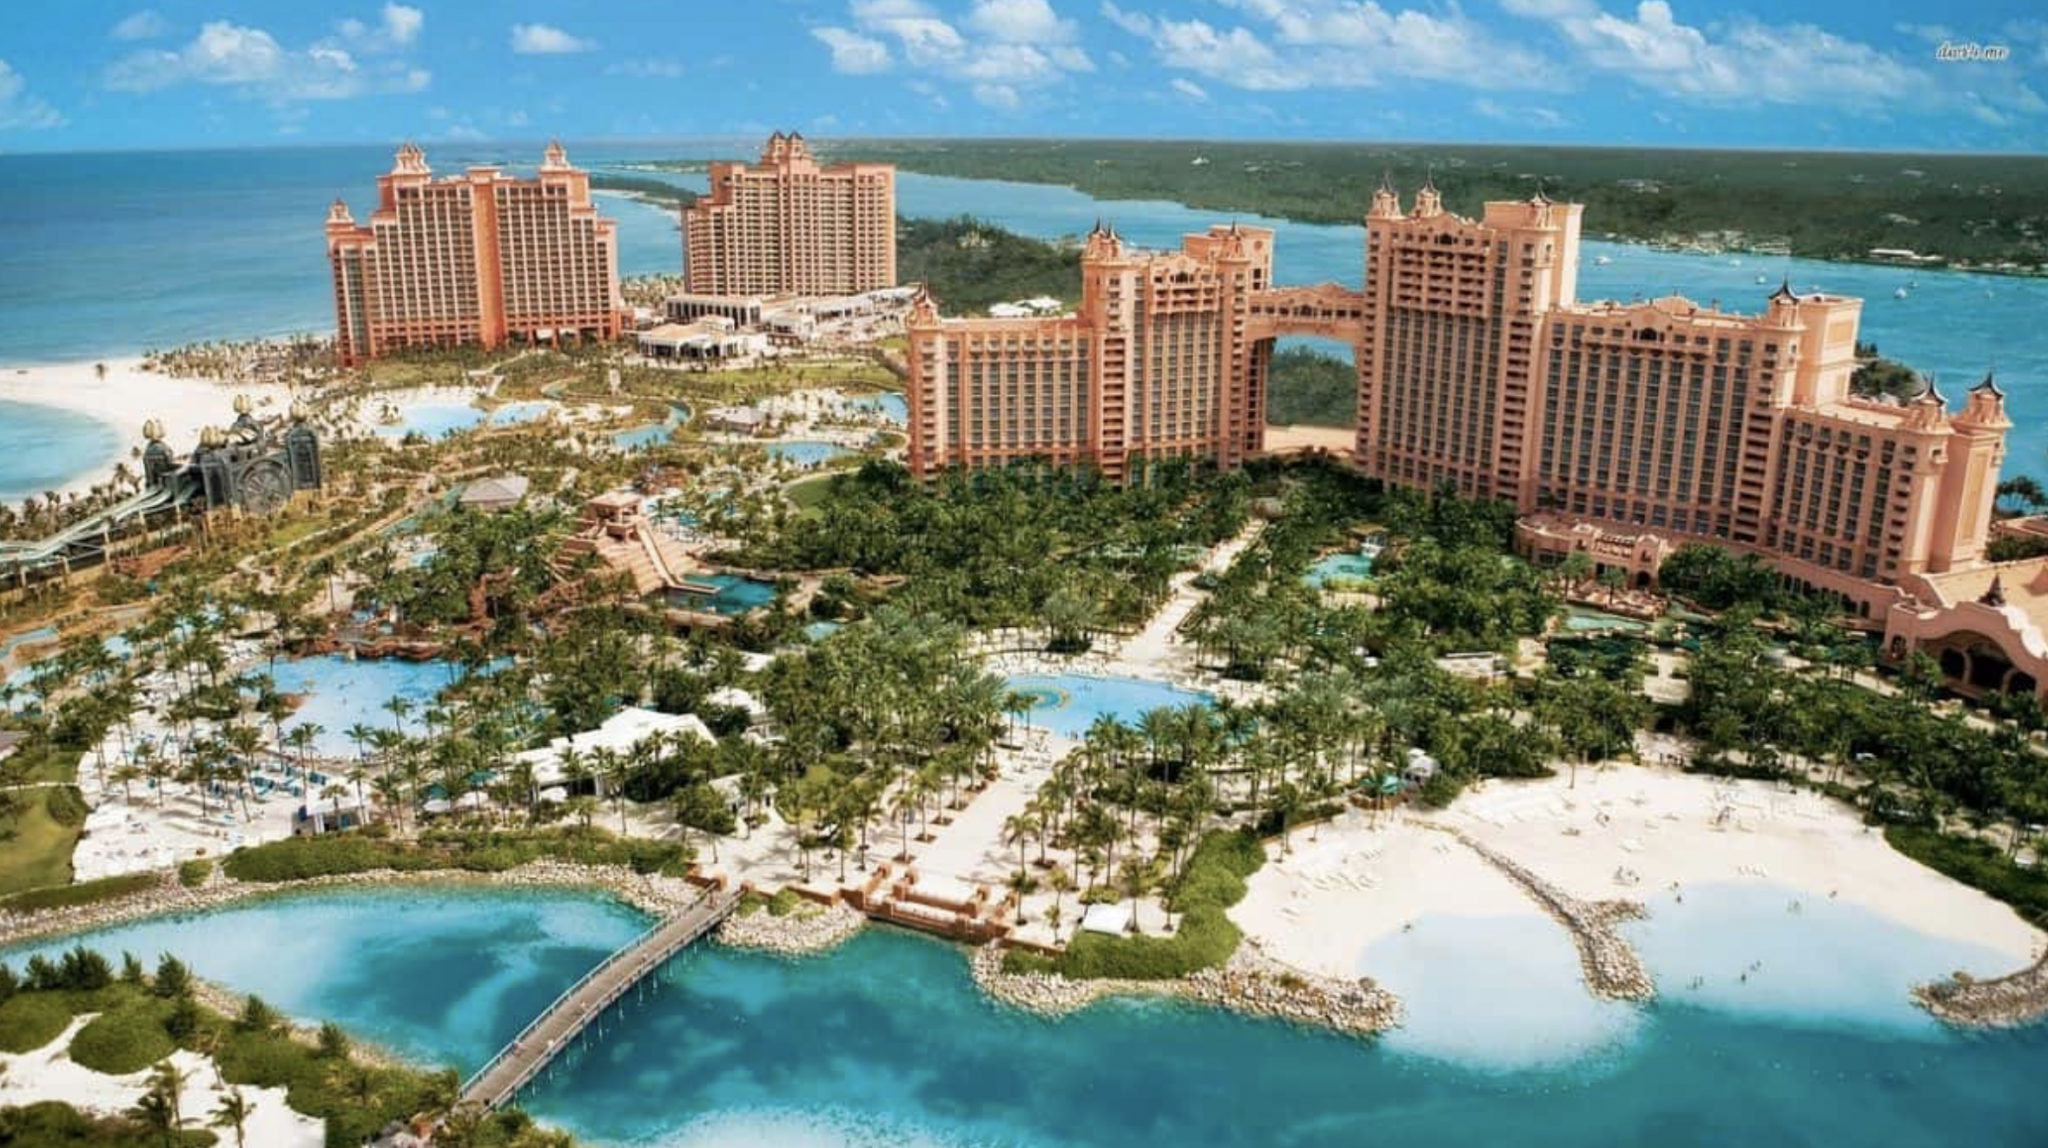 atlantis bahamas property map Vip Tips For Atlantis Resort Bahamas Travelingmom atlantis bahamas property map